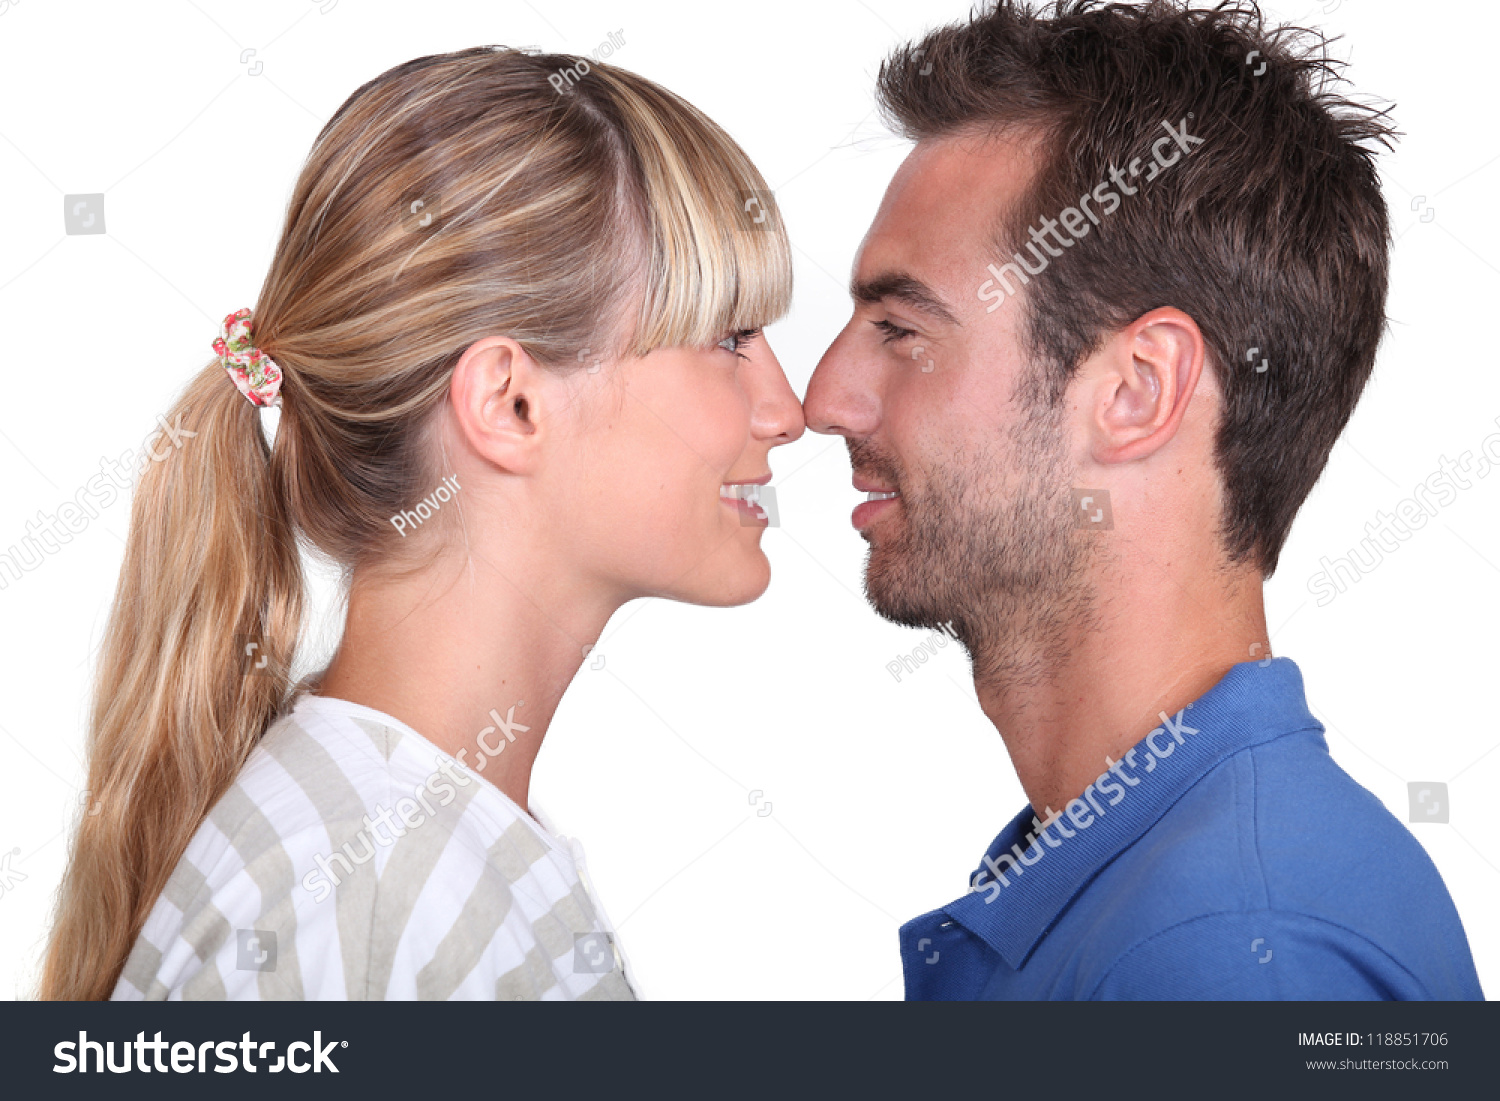 El muñeco no engaña - (Ley del muñeco) Stock-photo-couple-rubbing-noses-118851706